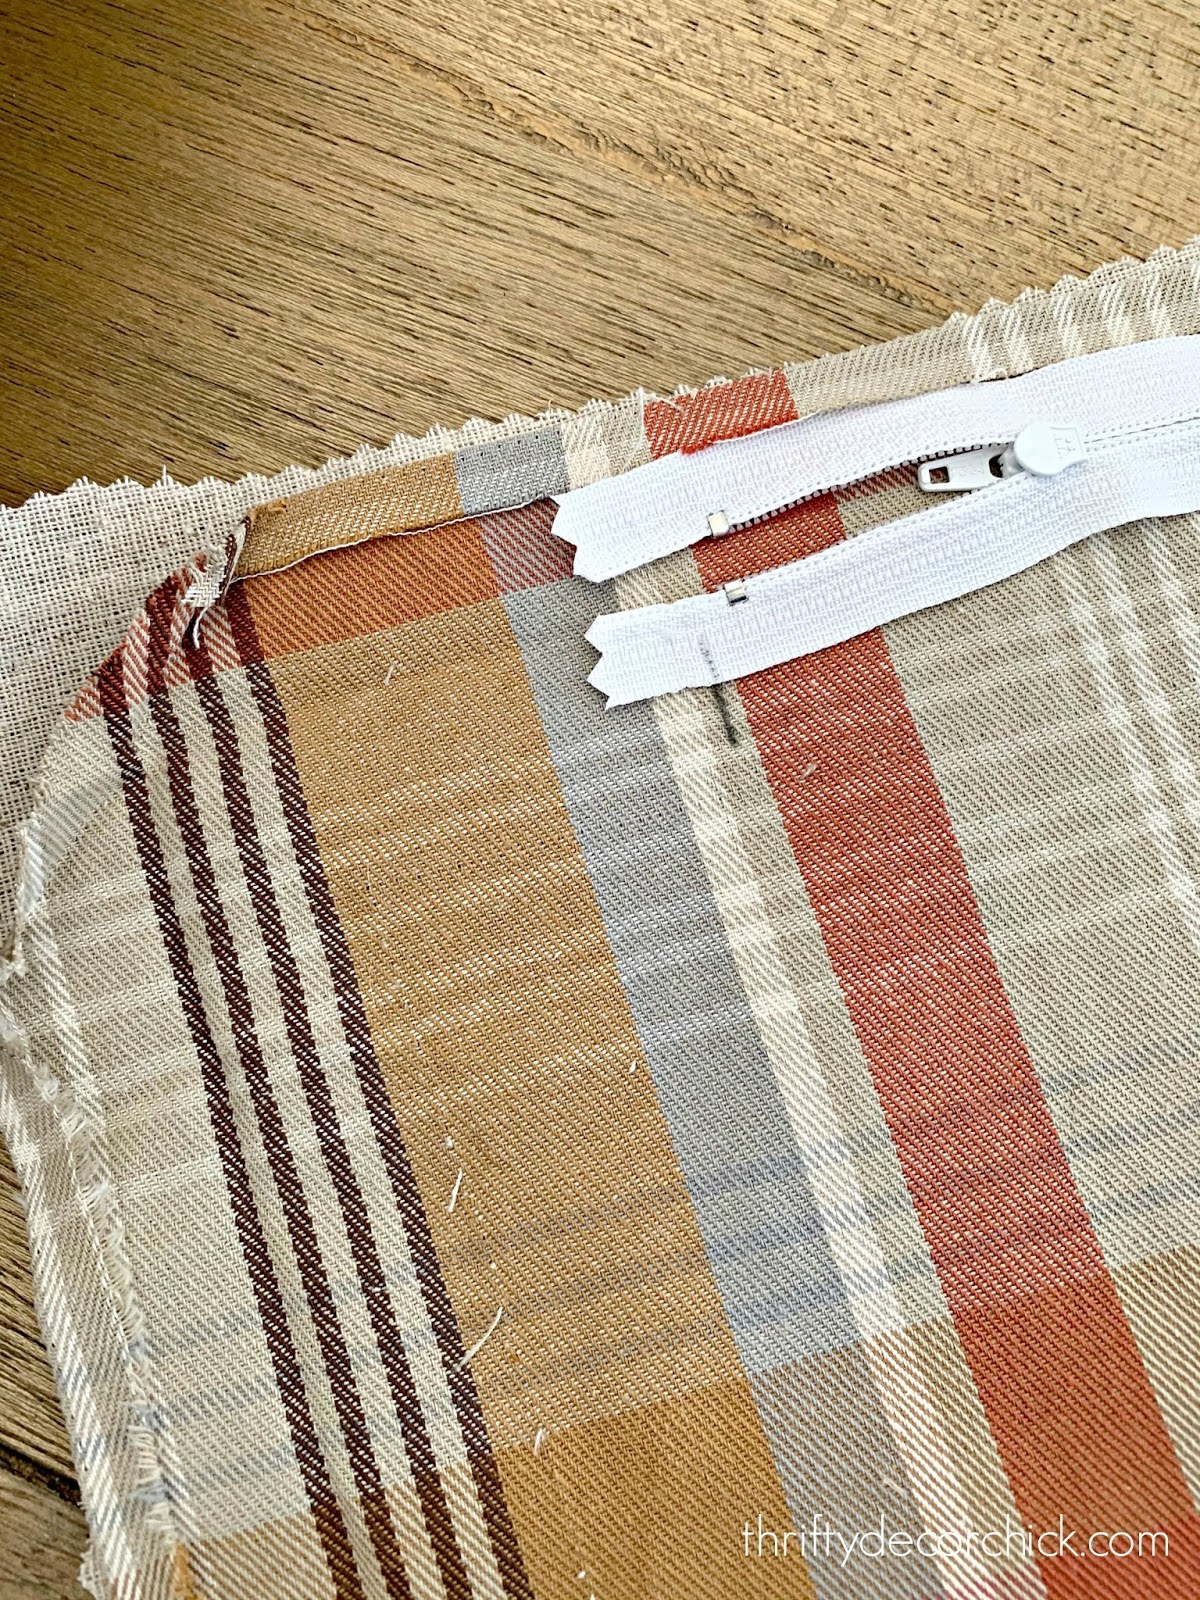 How to add a zipper to a DIY pillow cover